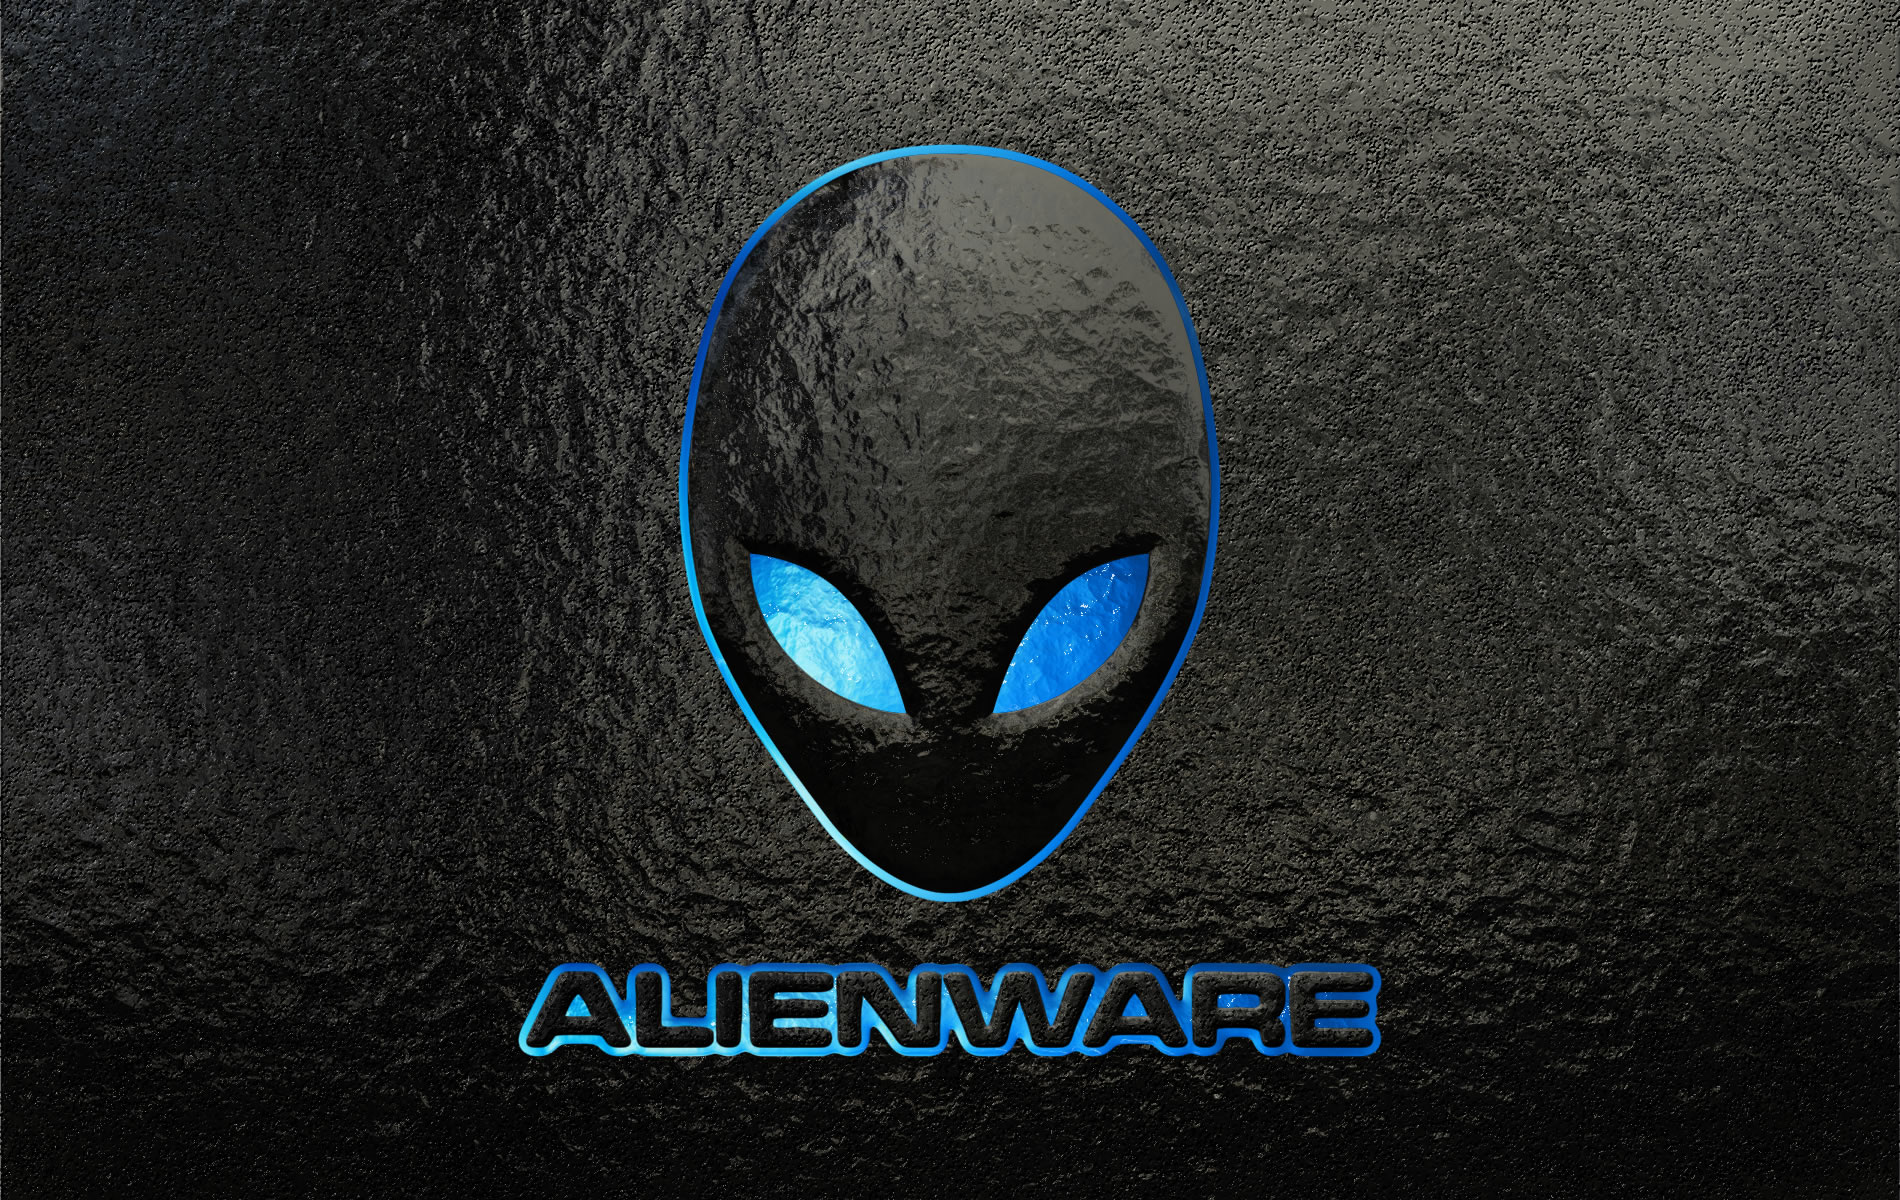 Hd Alienware Backgrounds For Wallpaper Red Mobile Laptop Pics